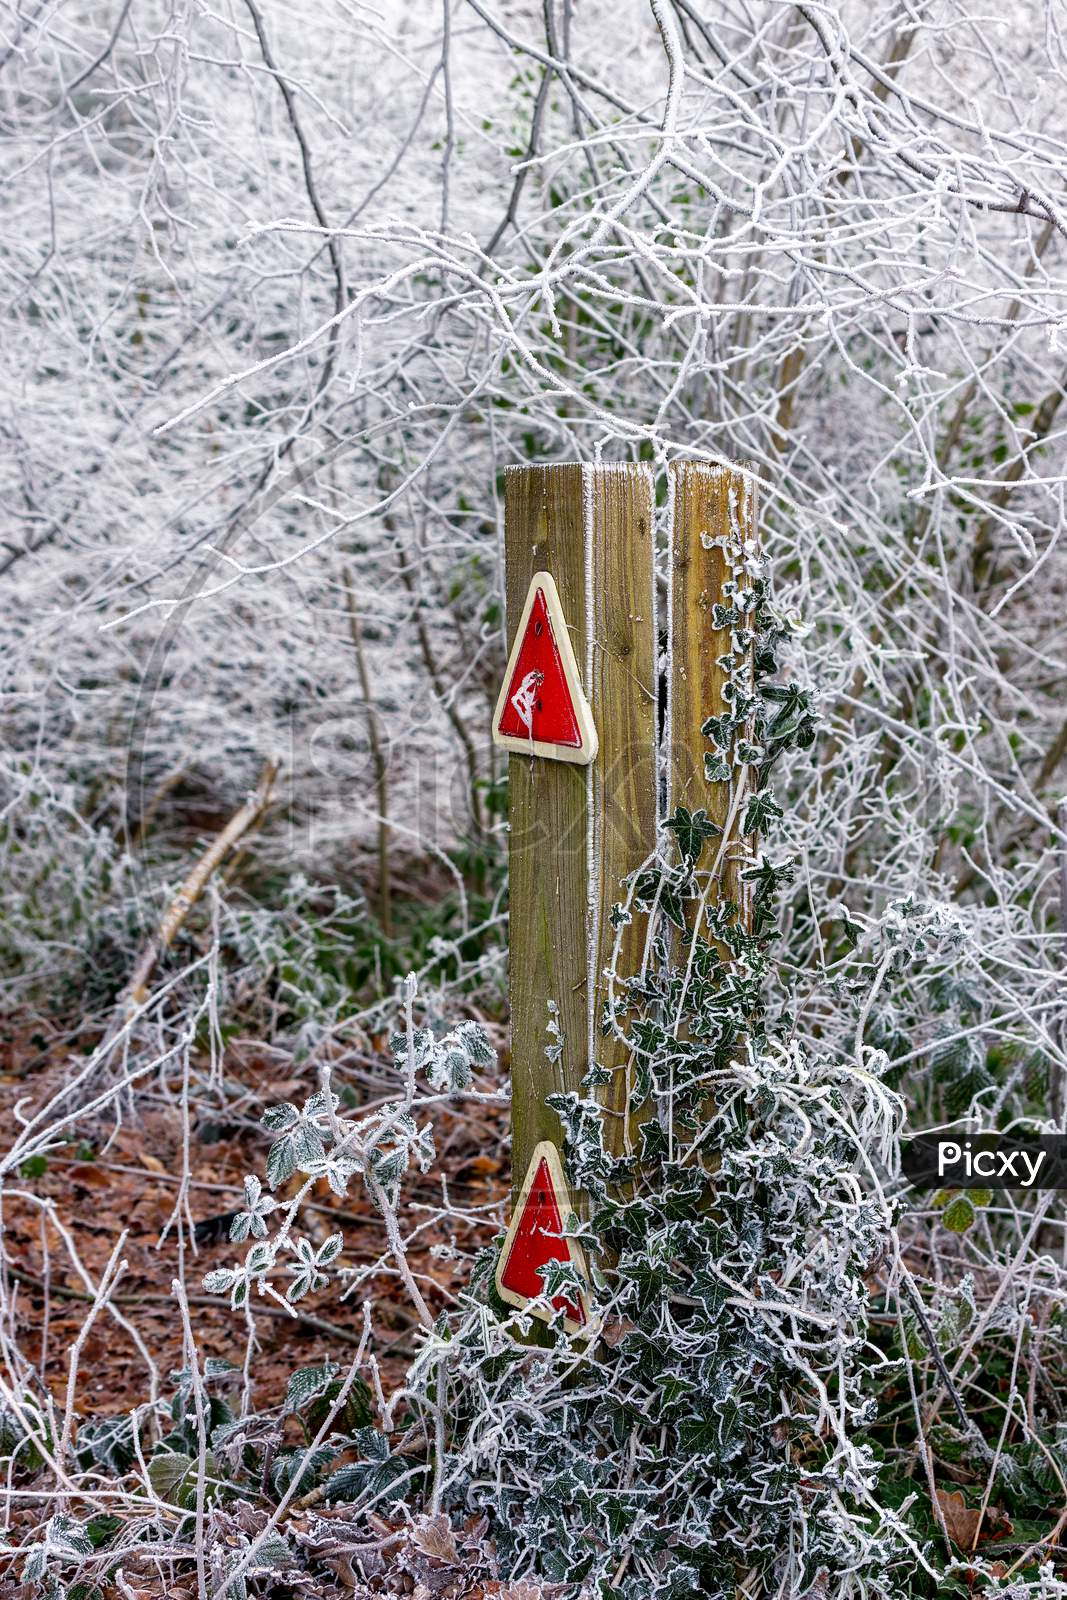 Wooden Post With Traffic Reflectors Covered In Ivy And Hoar Frost